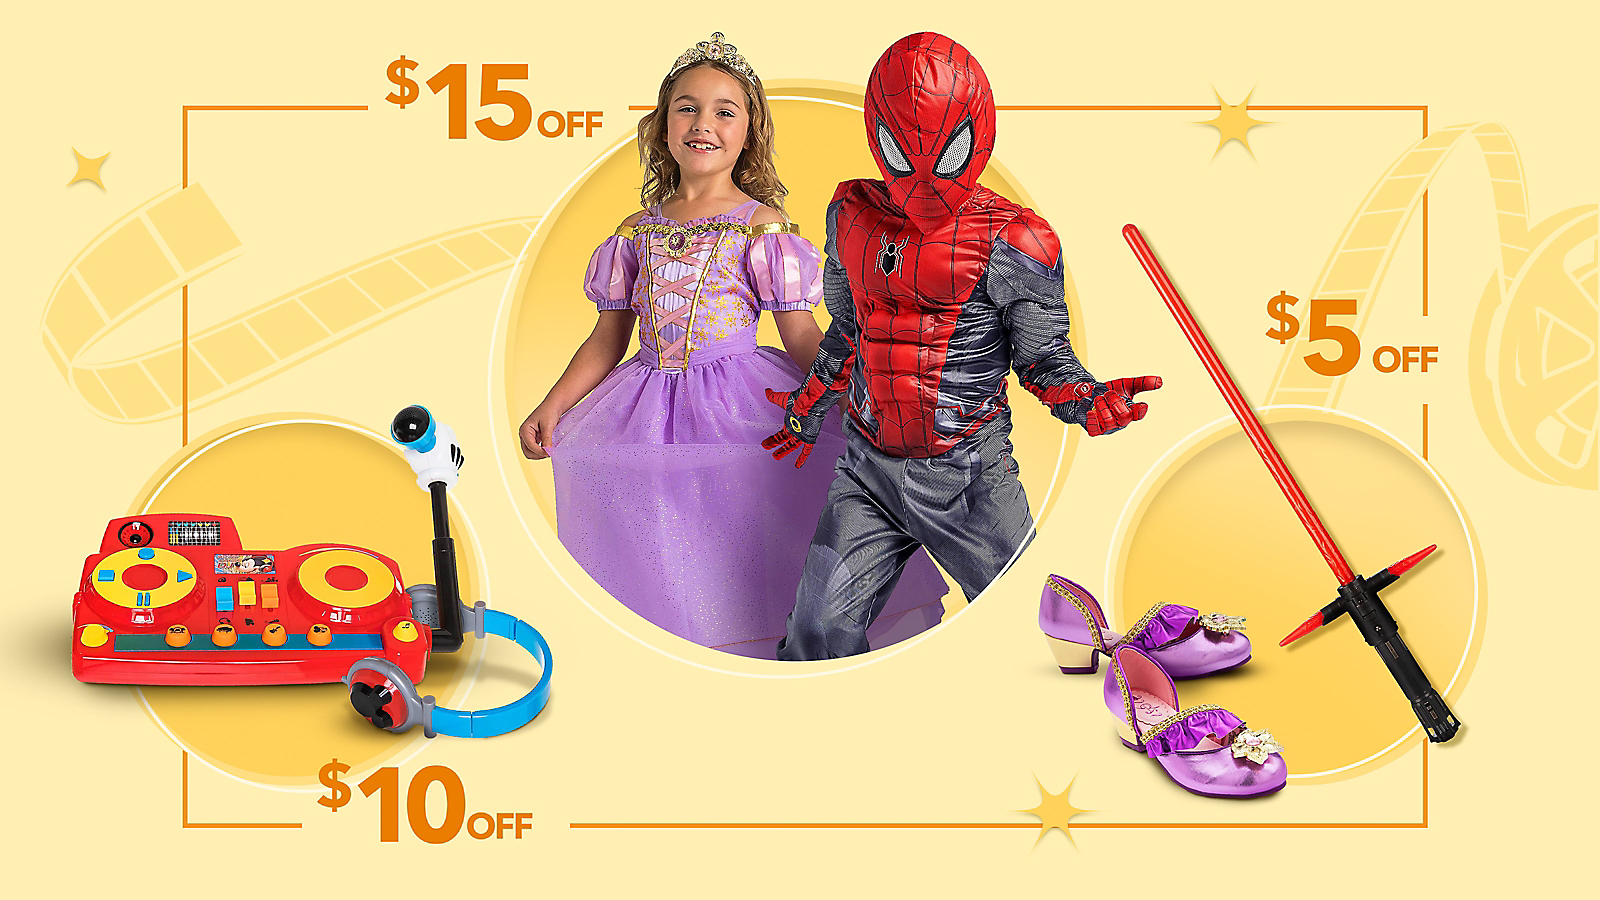 Fun with Disney [at logo]  [prices] $15 Off Girl in Rapunzel Costume Boy in Spider-Man Costume  $10 Off Mickey Mouse DJ Play Set Toy  $5 Off Rapunzel Costume Slippers Kylo Ren Lightsaber Toy